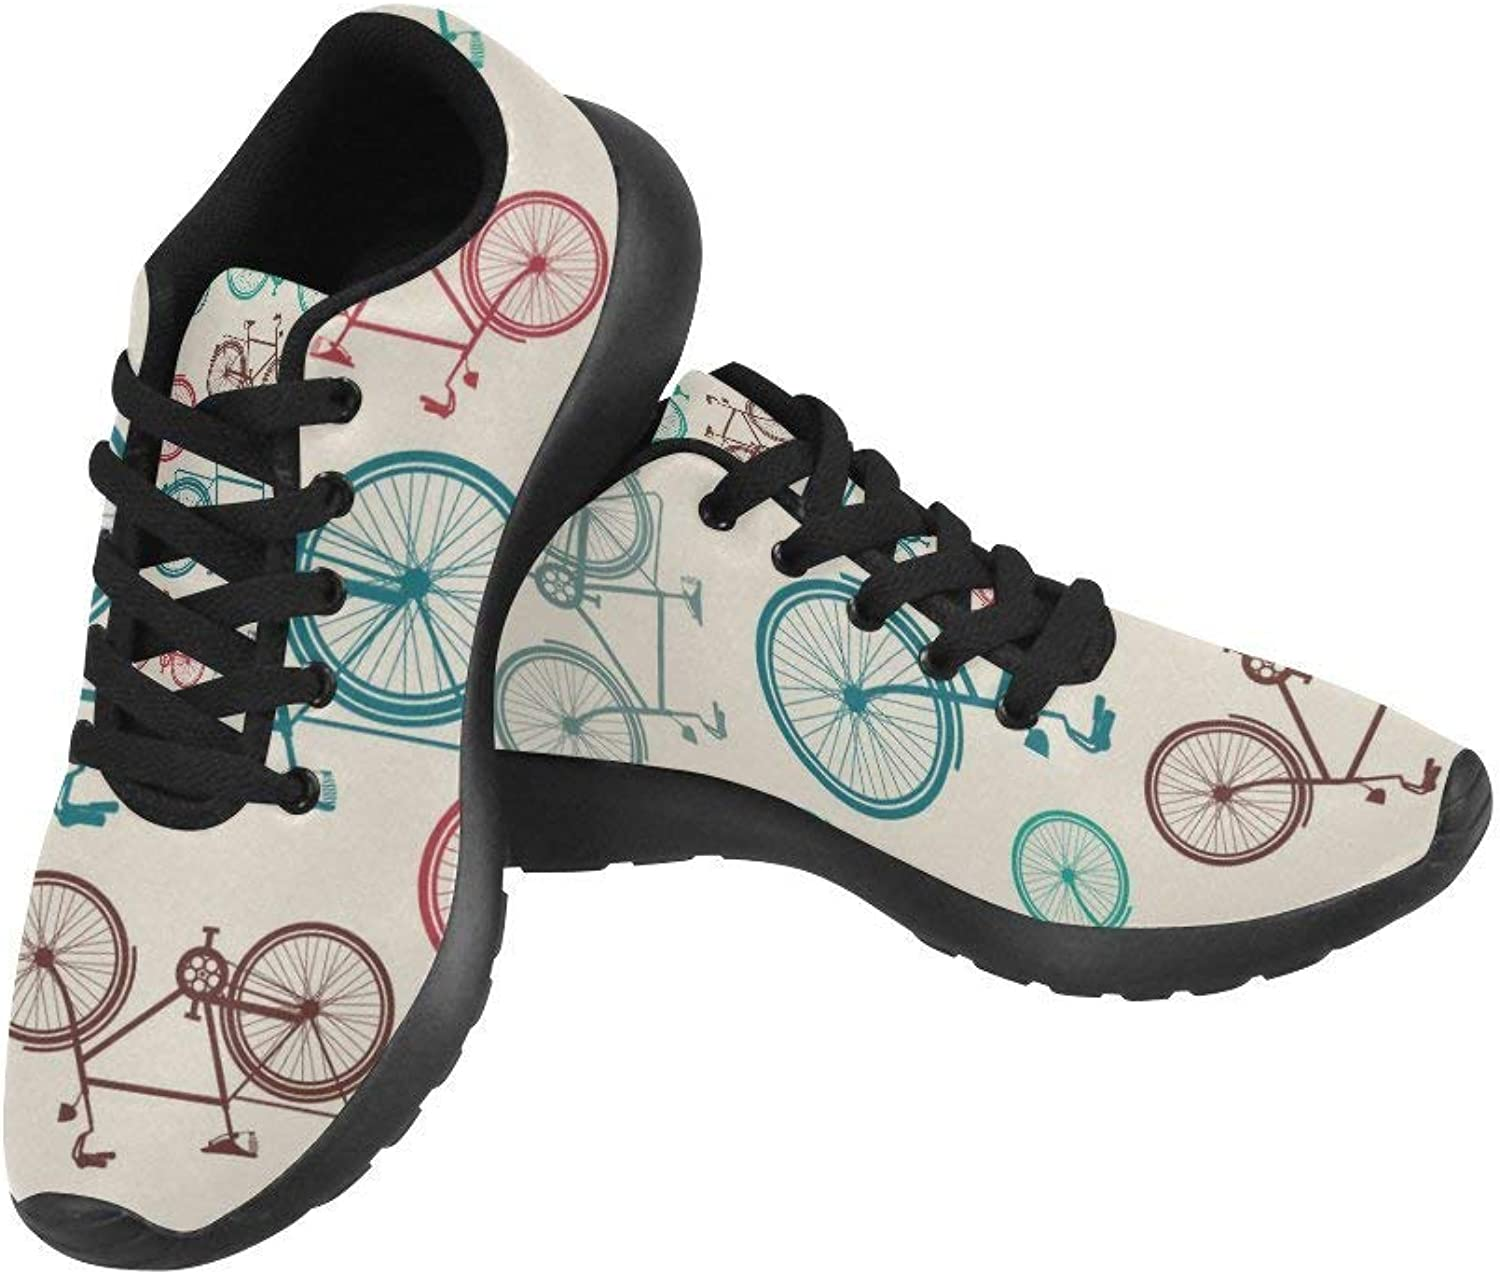 InterestPrint Colourful Vintage Bike Women's Running shoes Casual Lightweight Athletic Sneakers US Size 6-15